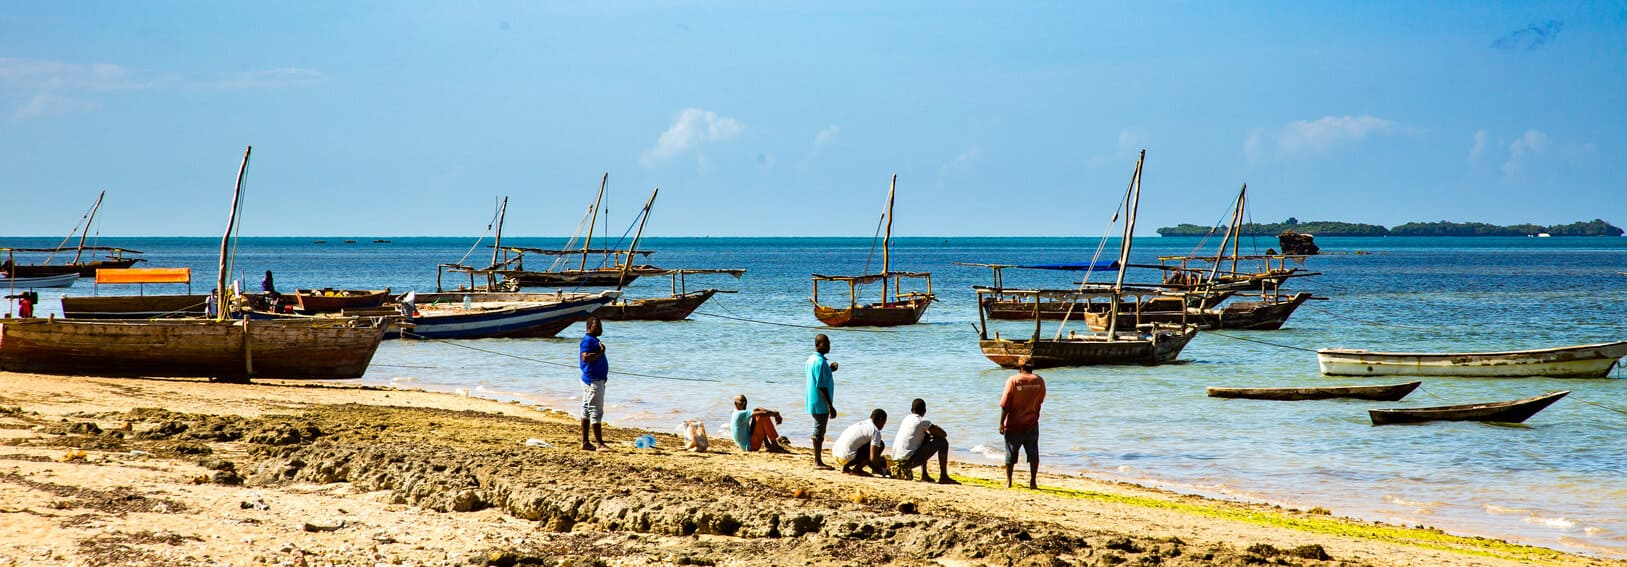 Fishing boats tied up along the shore of the Indian Ocean.